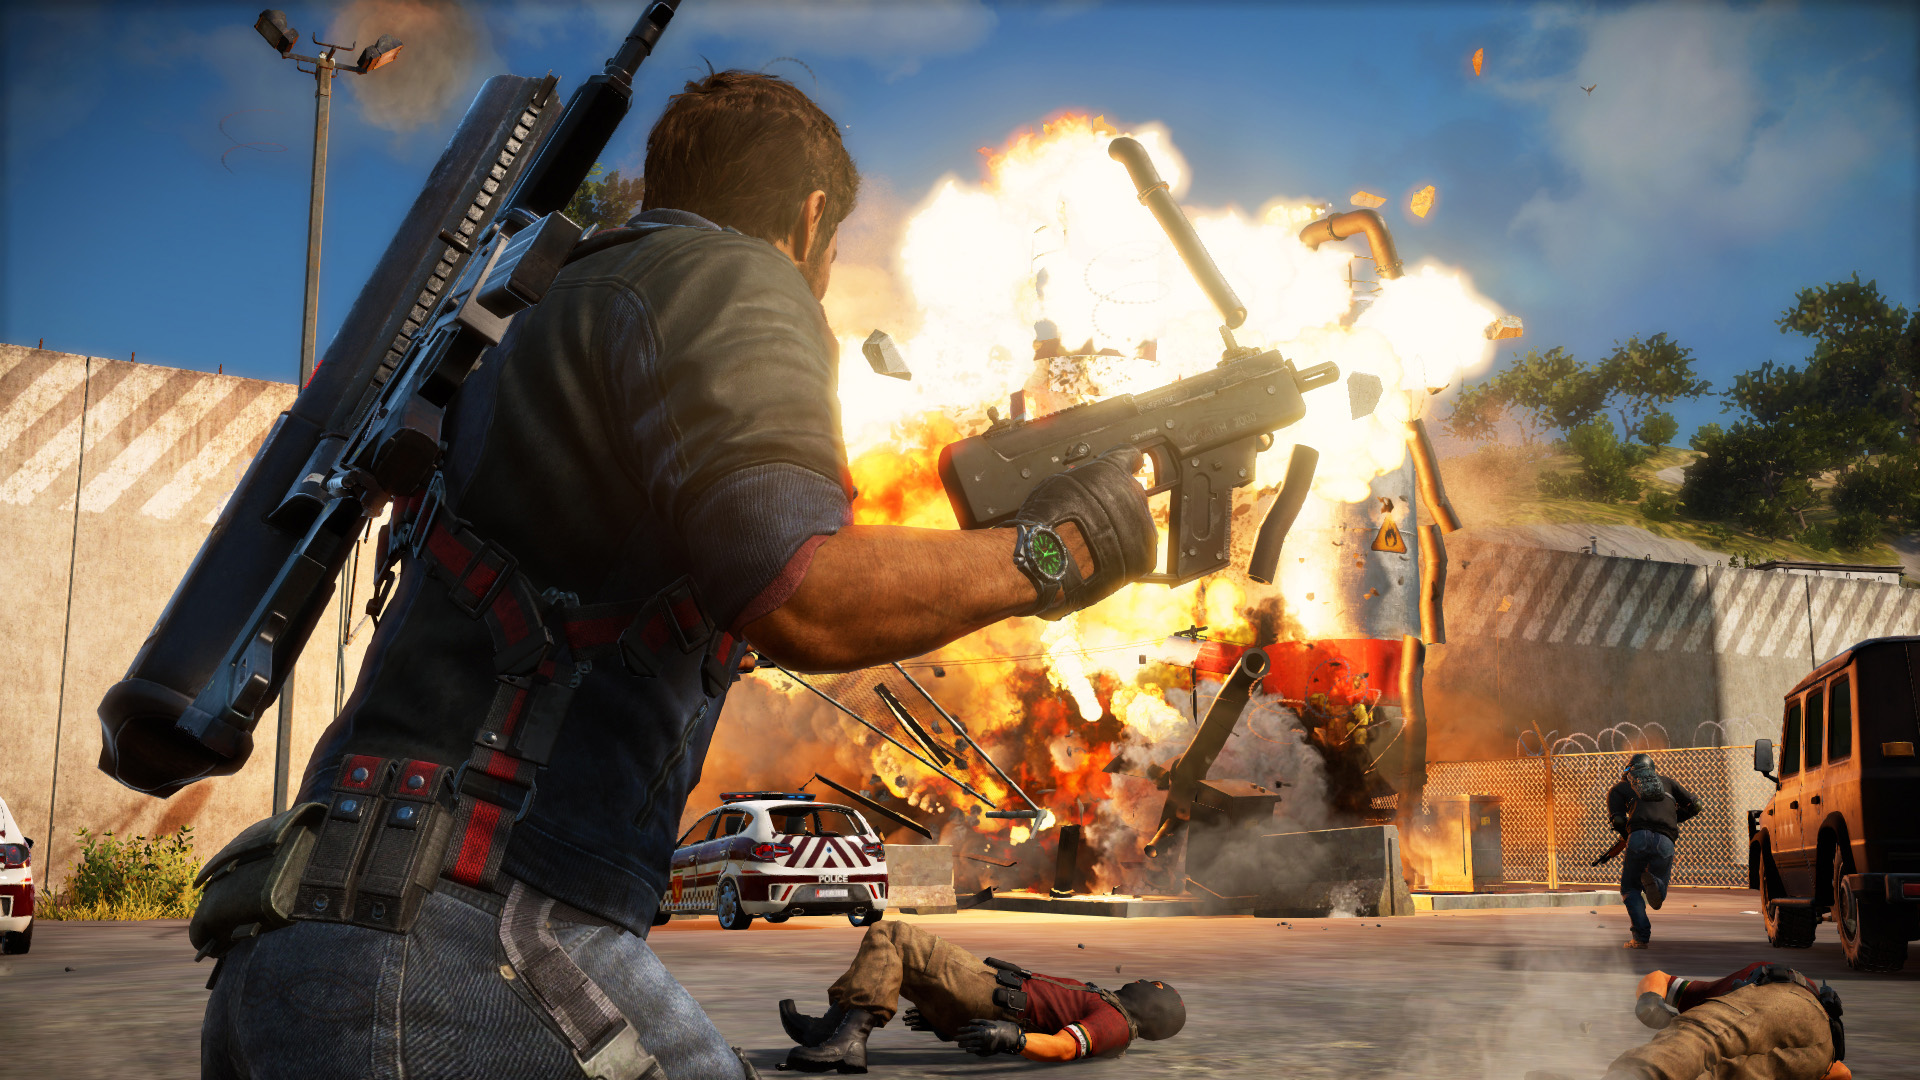 Photo of your computer ready to wreak havoc? Here are the official system requirements for Just Cause 3